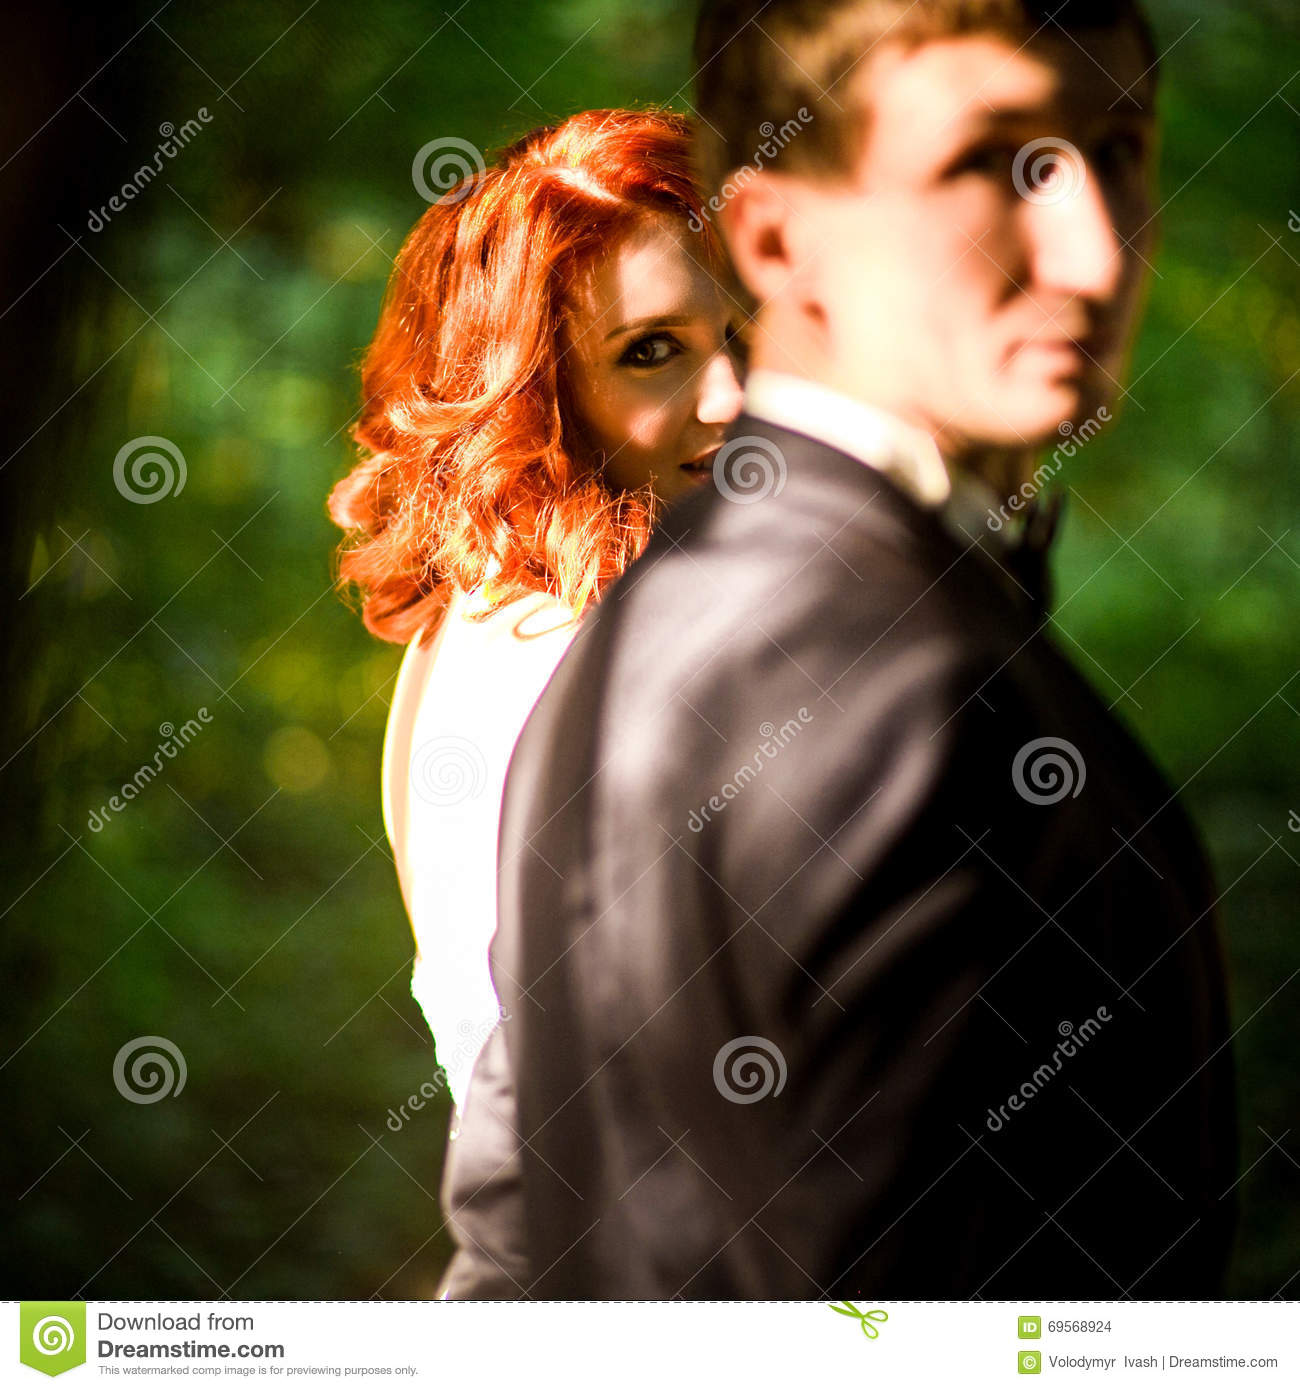 glance of the redhead bride next to the groom